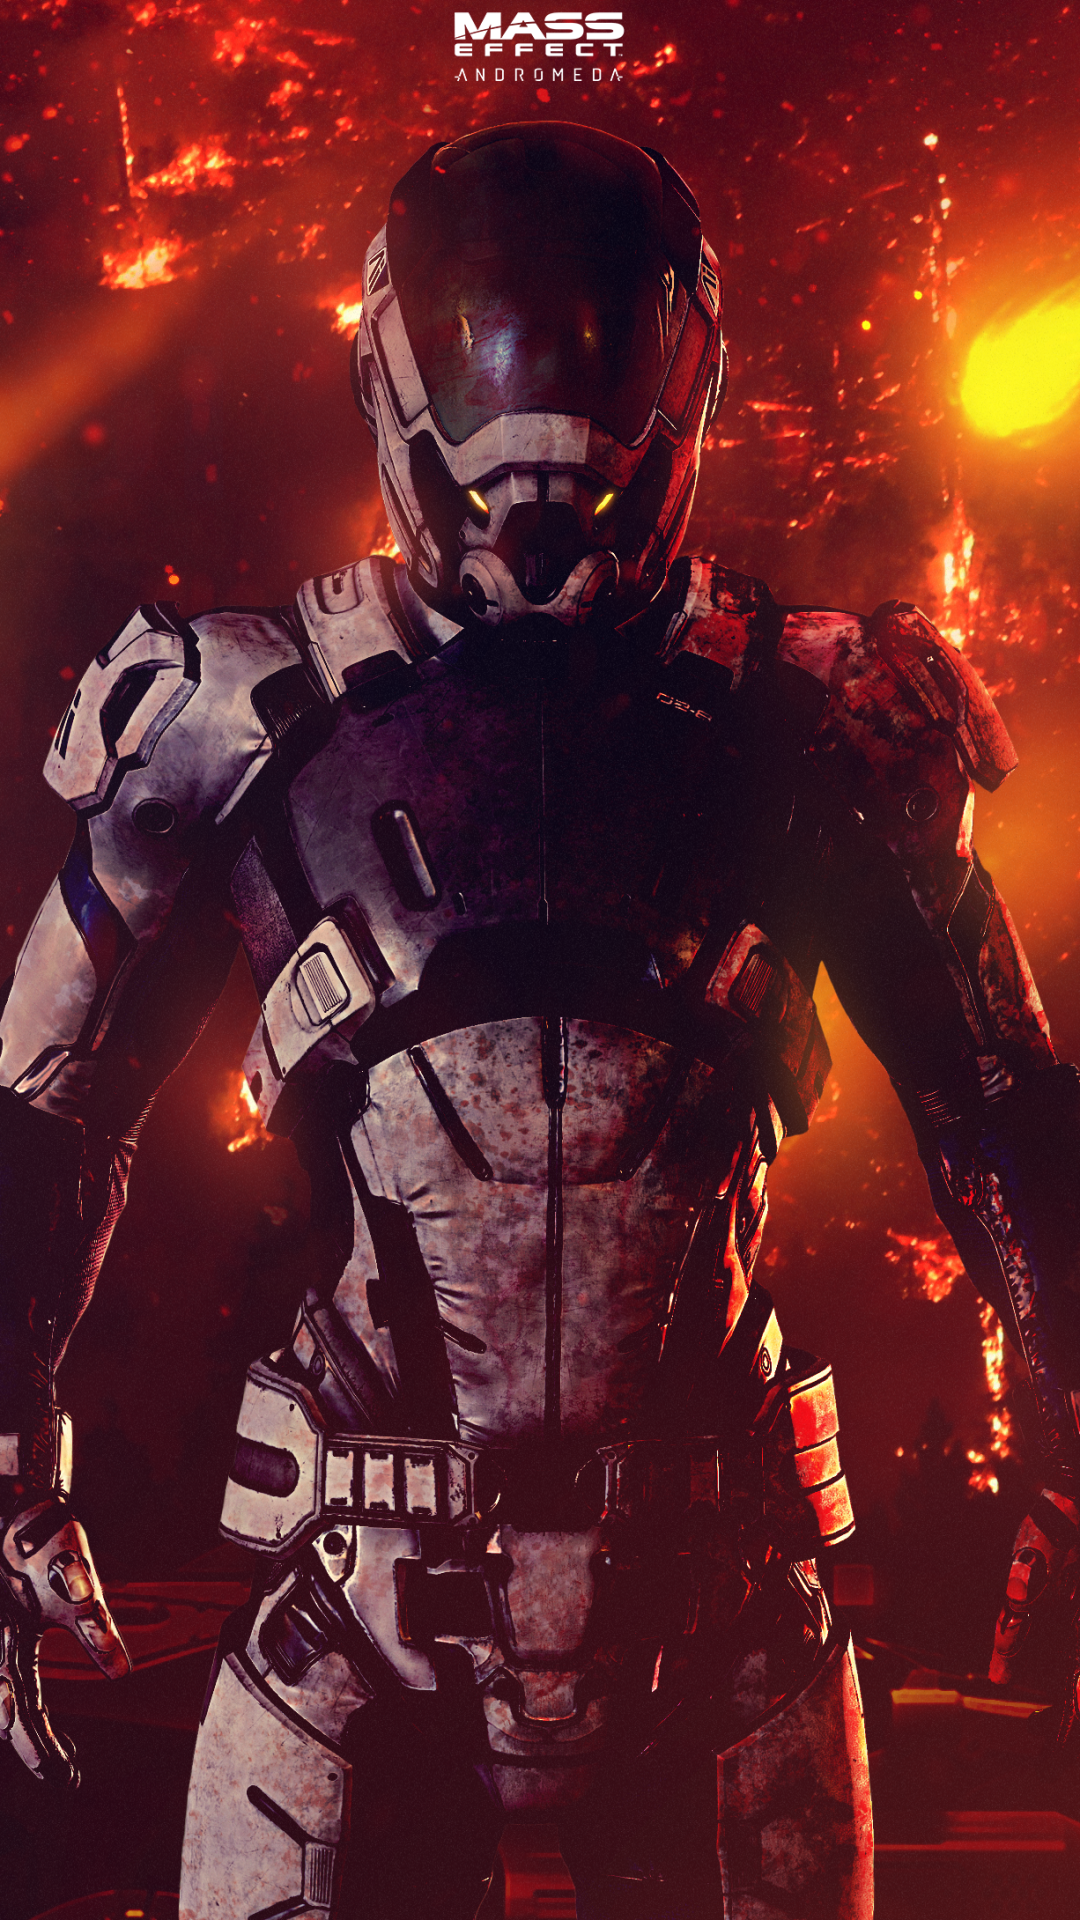 mass effect iphone wallpapers 41 wallpapers � hd wallpapers